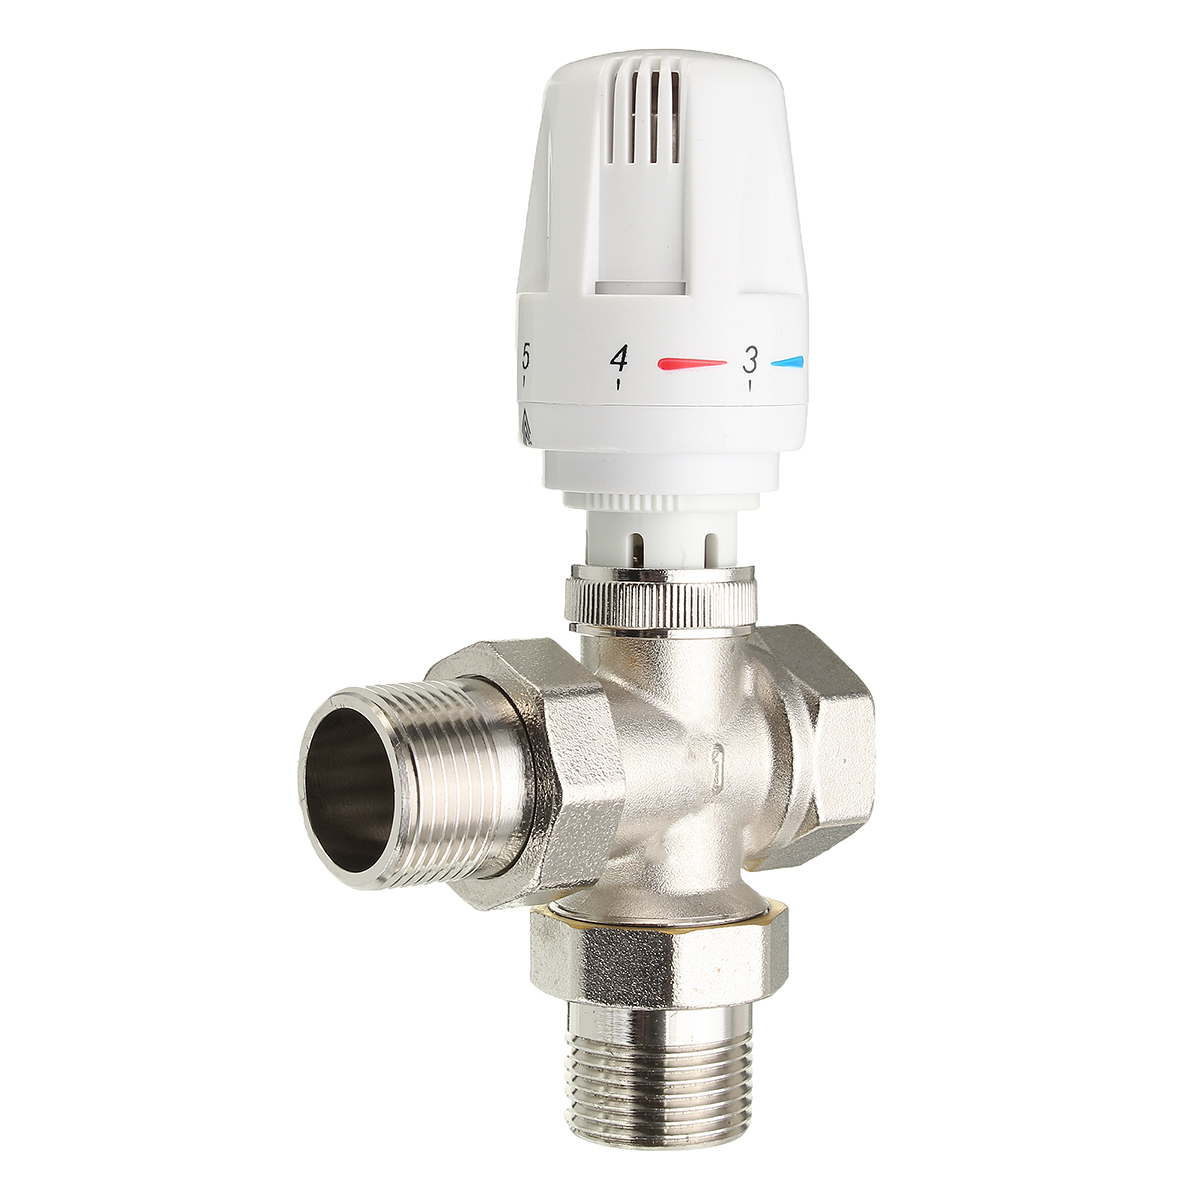 G1/2''/G3/4''/G1'' Standard Thermostatic Angled Radiator Brass Valve For Five Temperature Settings